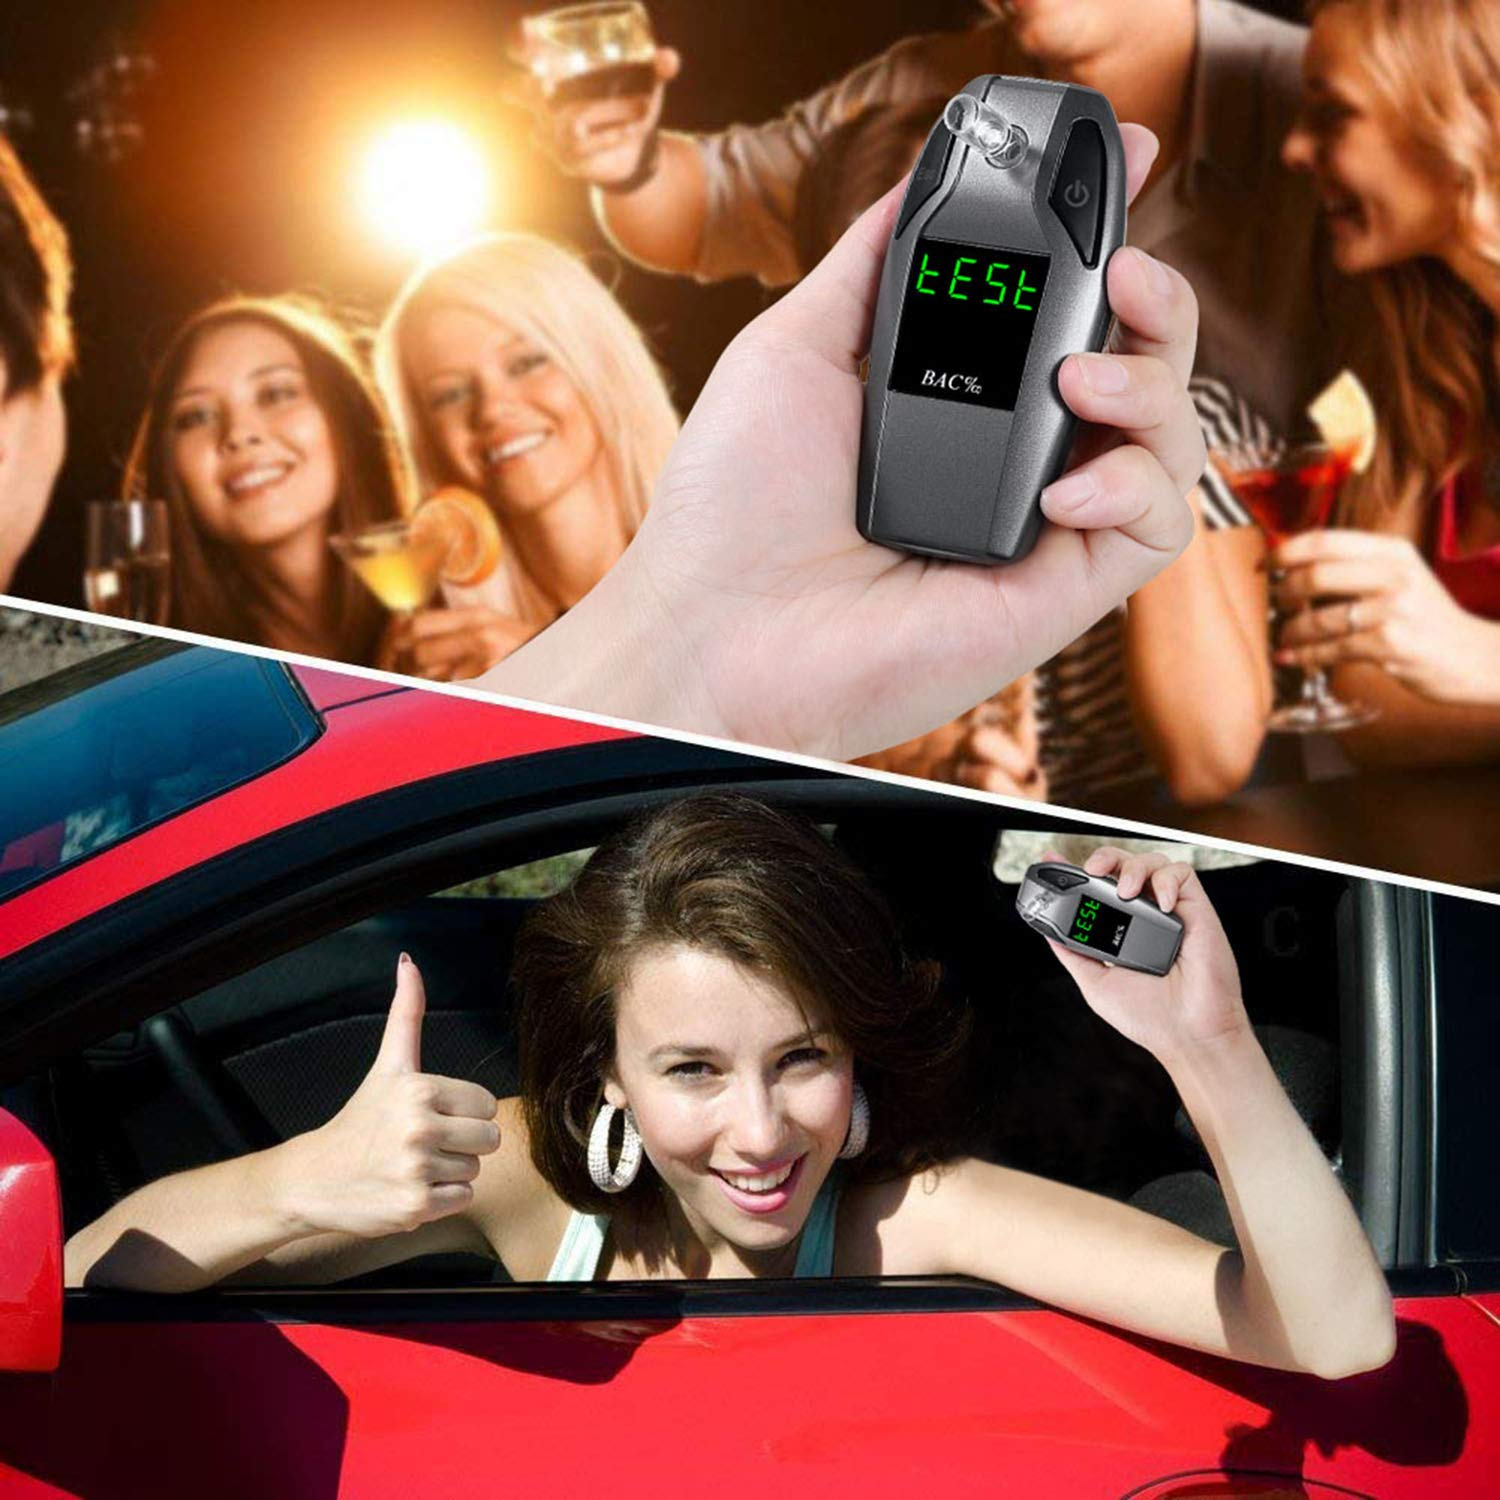 JASTEK Breathalyzer, [2019 New Version] Fuel Cell Sensor Digital Breath Alcohol Tester and Professional Grade Blood Alcohol Content Detector Made of Zinc Alloy by JASTEK (Image #1)